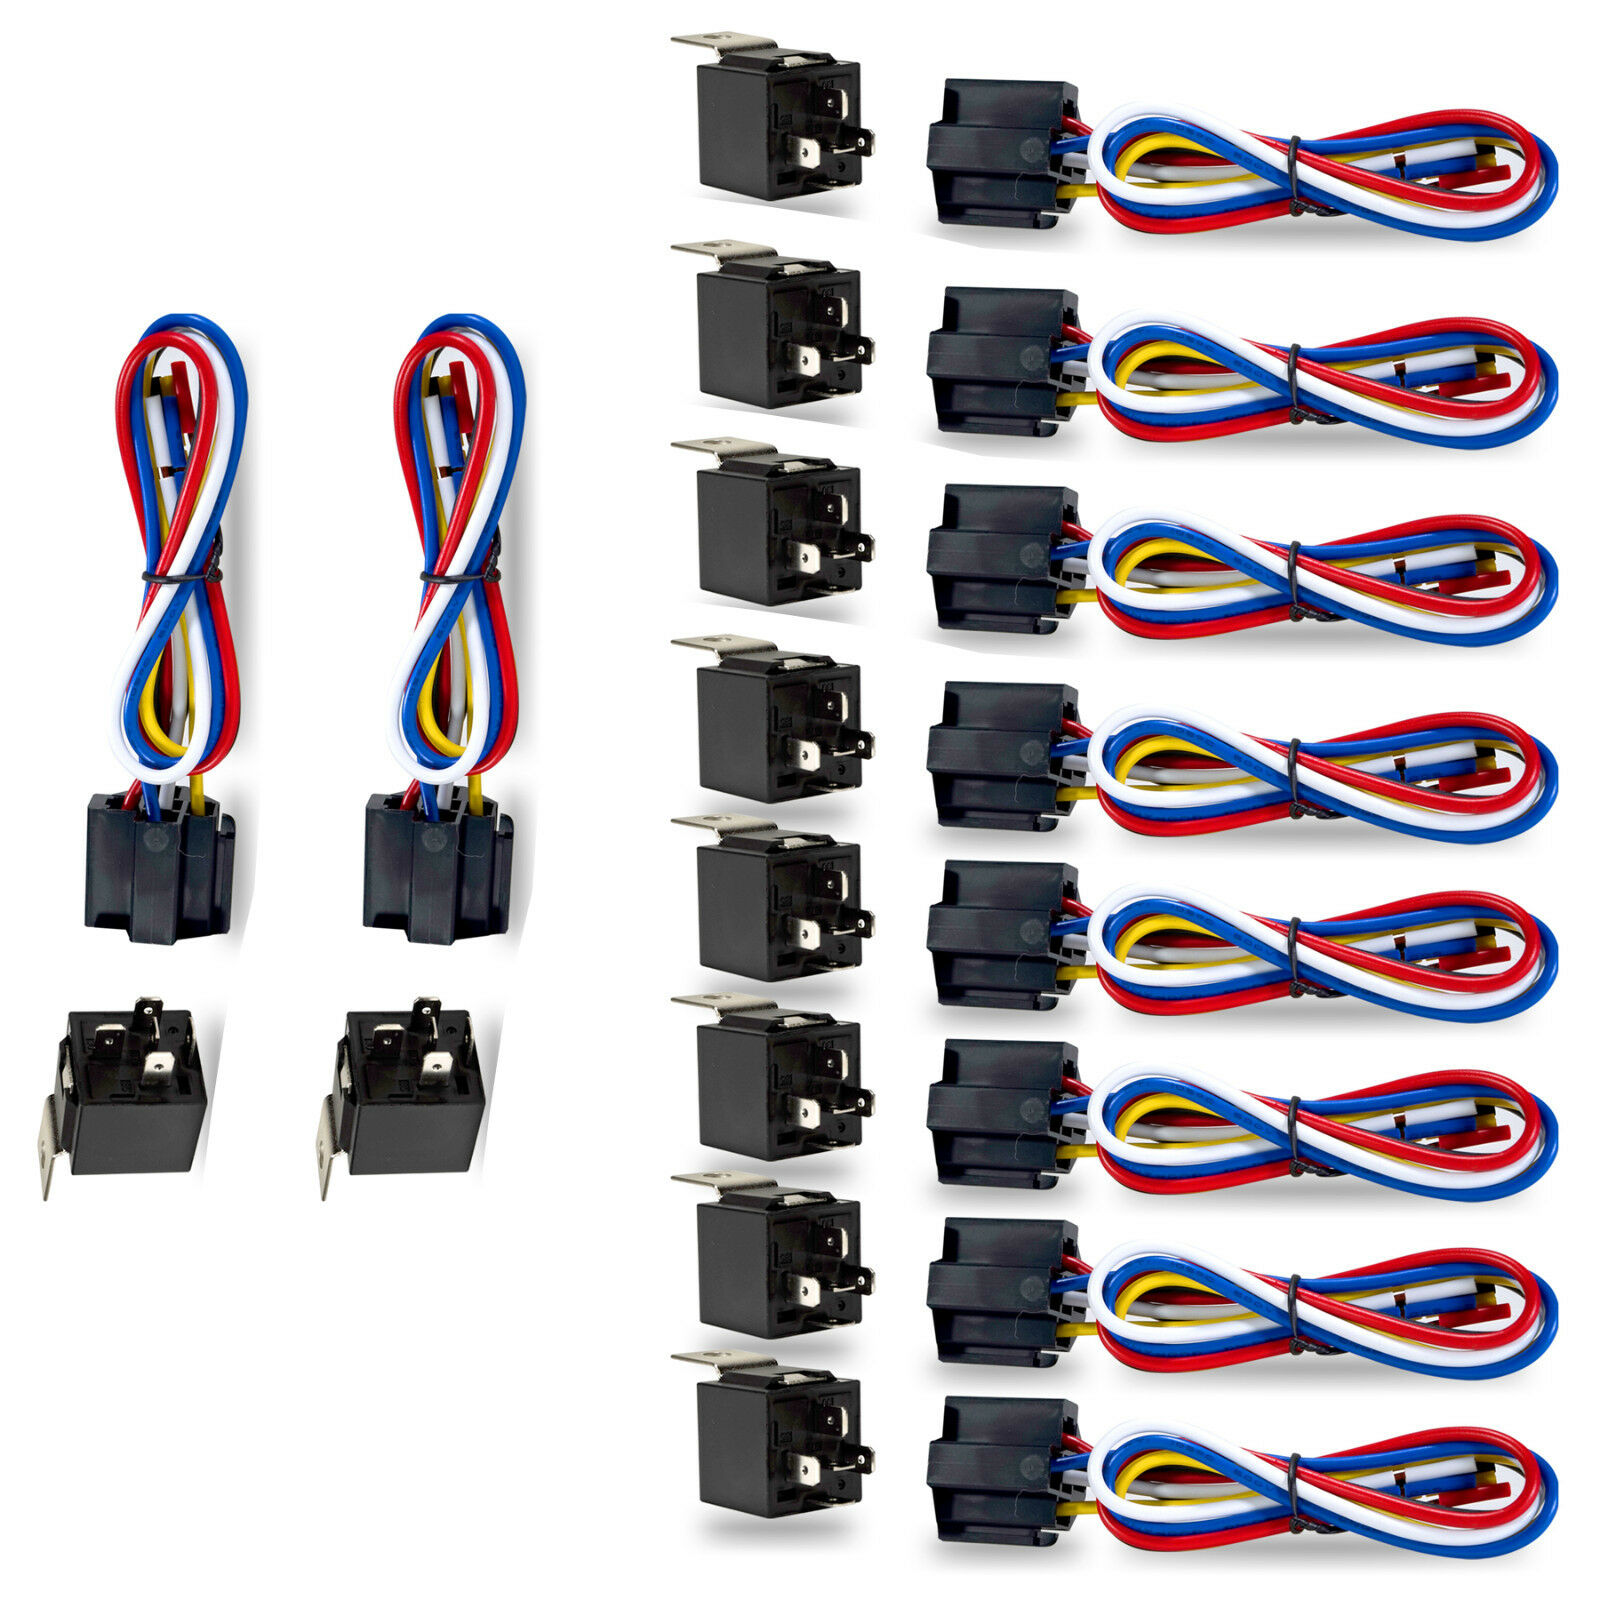 10 pack car 30 40 amp relay automotive harness socket 5 wires spdt 5 30 amp rv wiring diagram 10 pack car 30 40 amp relay automotive harness socket 5 wires spdt 5 pin 1 of 4free shipping see more